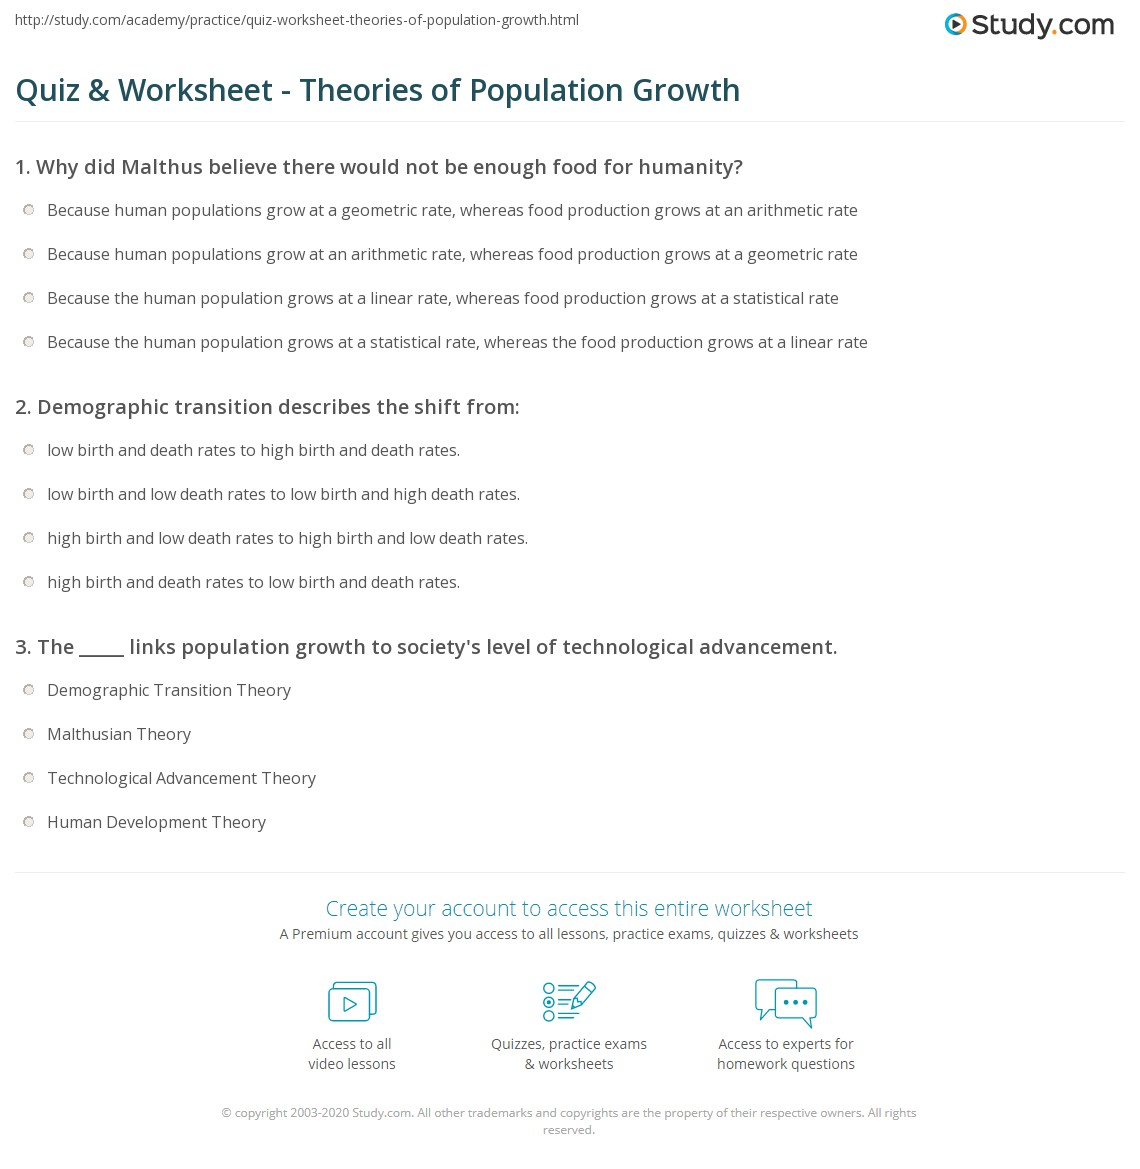 quiz worksheet theories of population growth. Black Bedroom Furniture Sets. Home Design Ideas